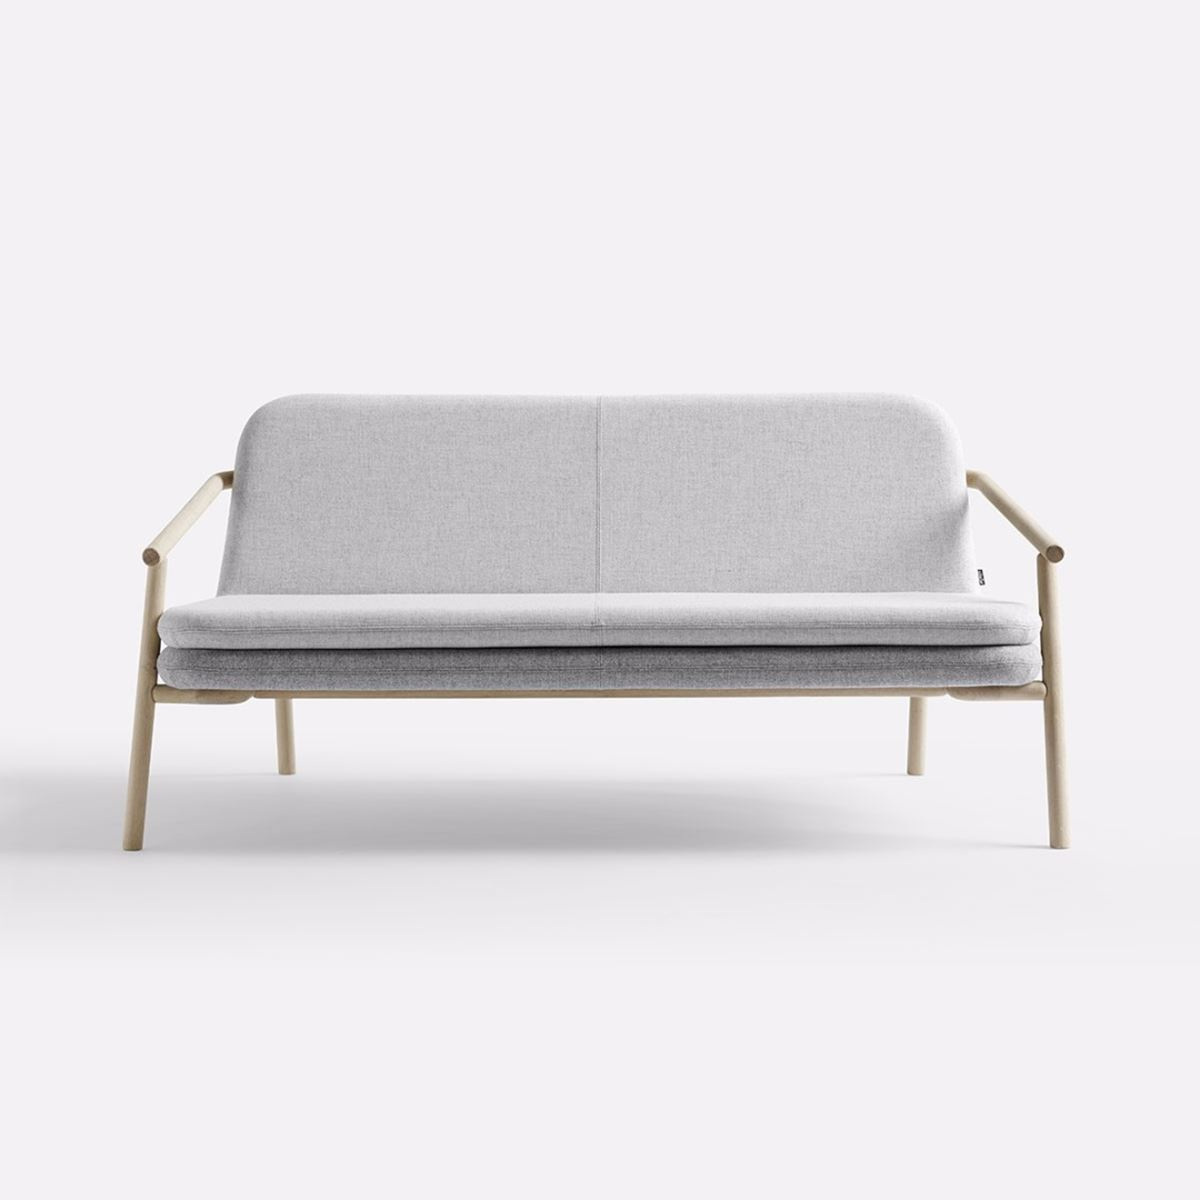 Halle Sofa Design Kollektion Plus Halle Bruno Wickart Blog